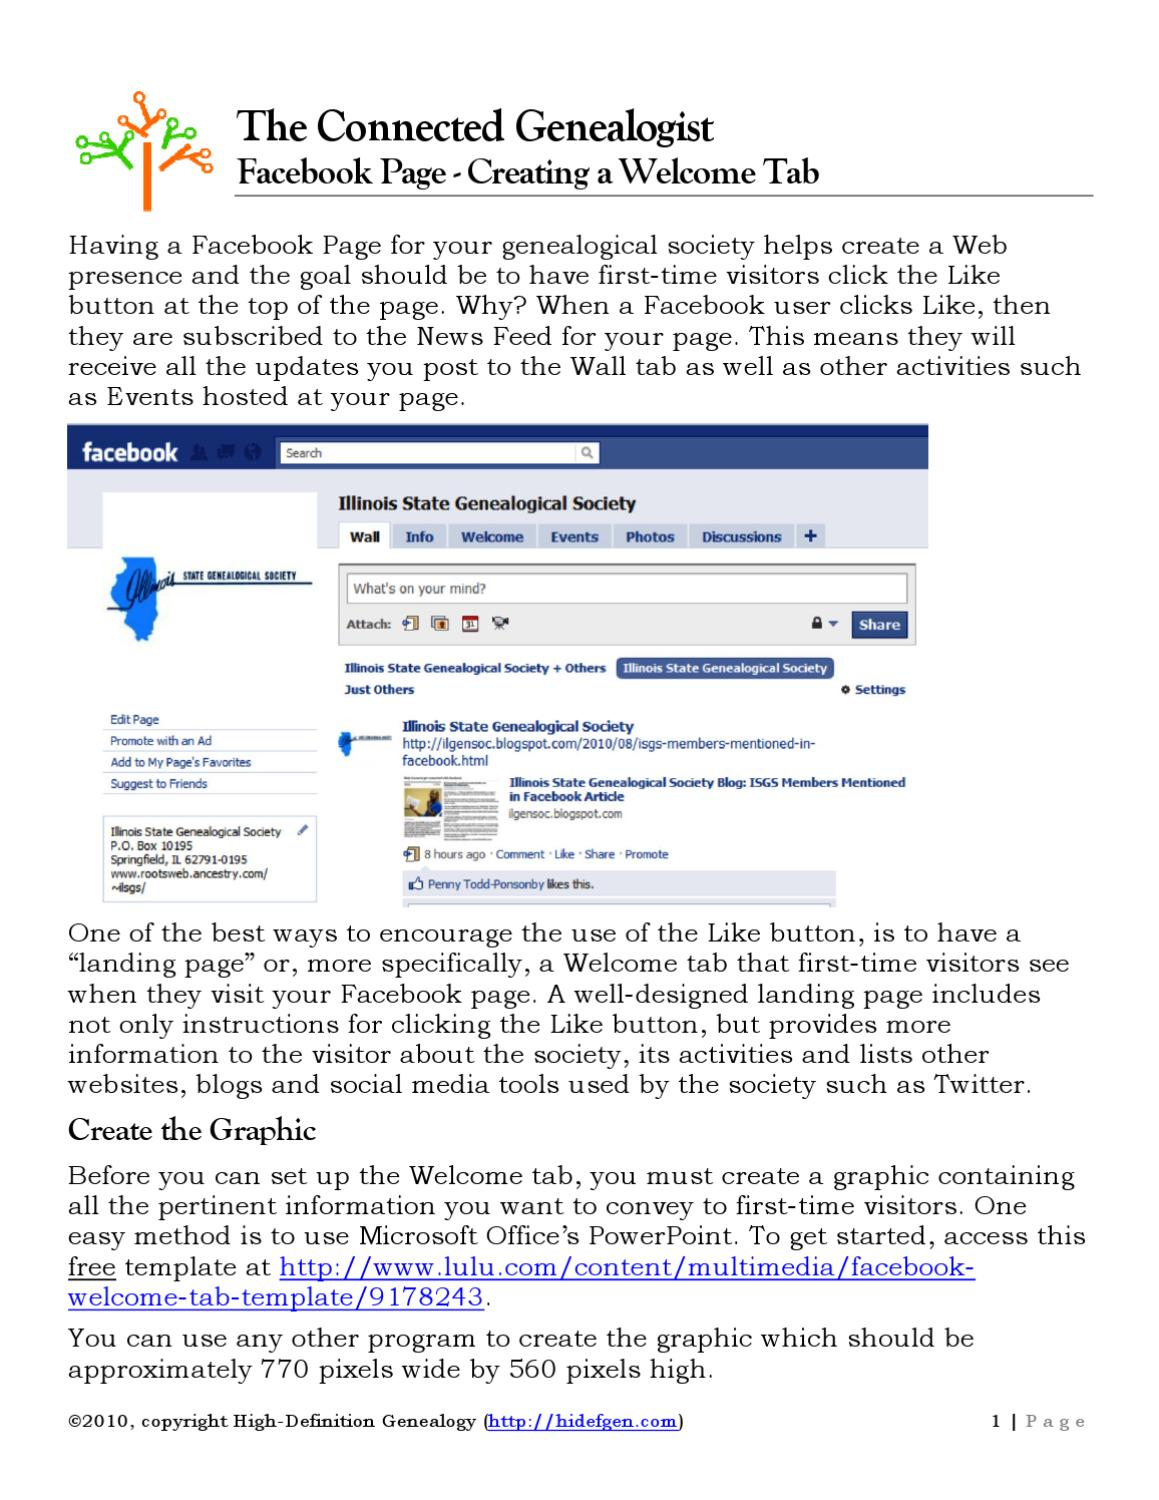 Facebook Page Creating A Welcome Tab By High Definition Genealogy